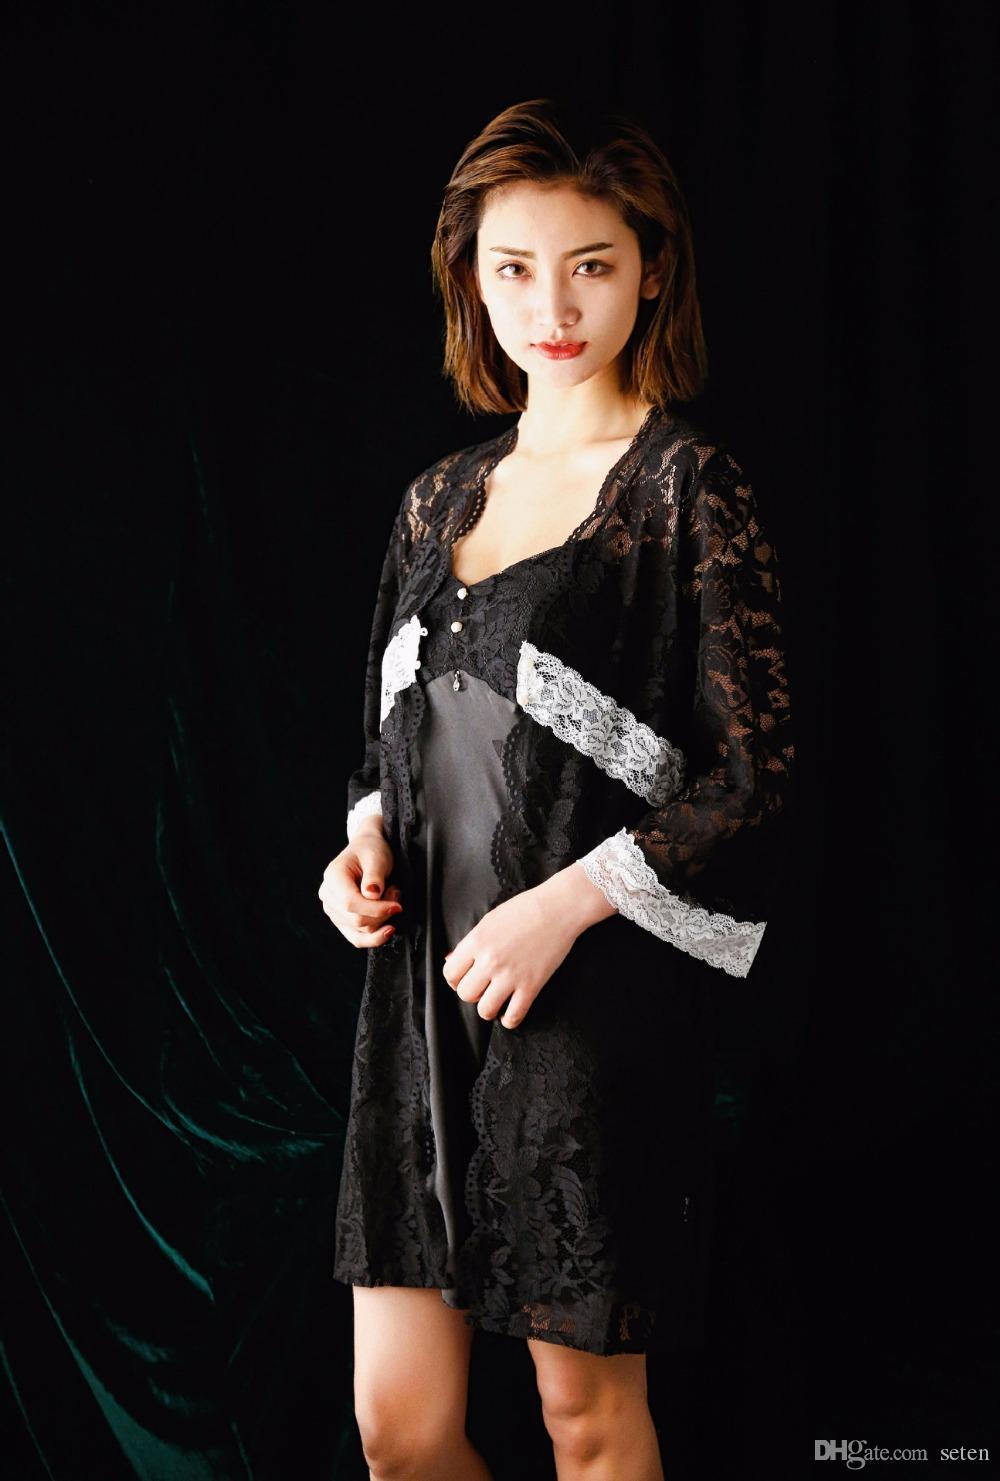 4d6a7857f95 Sexy Dressing Gowns for Women 2018 Spring Summer Robe Femme Lace Kimono  Nightie Sleepwear Gown Sets Bathrobes Night Dress Black Robe   Gown Sets  Cheap Robe ...